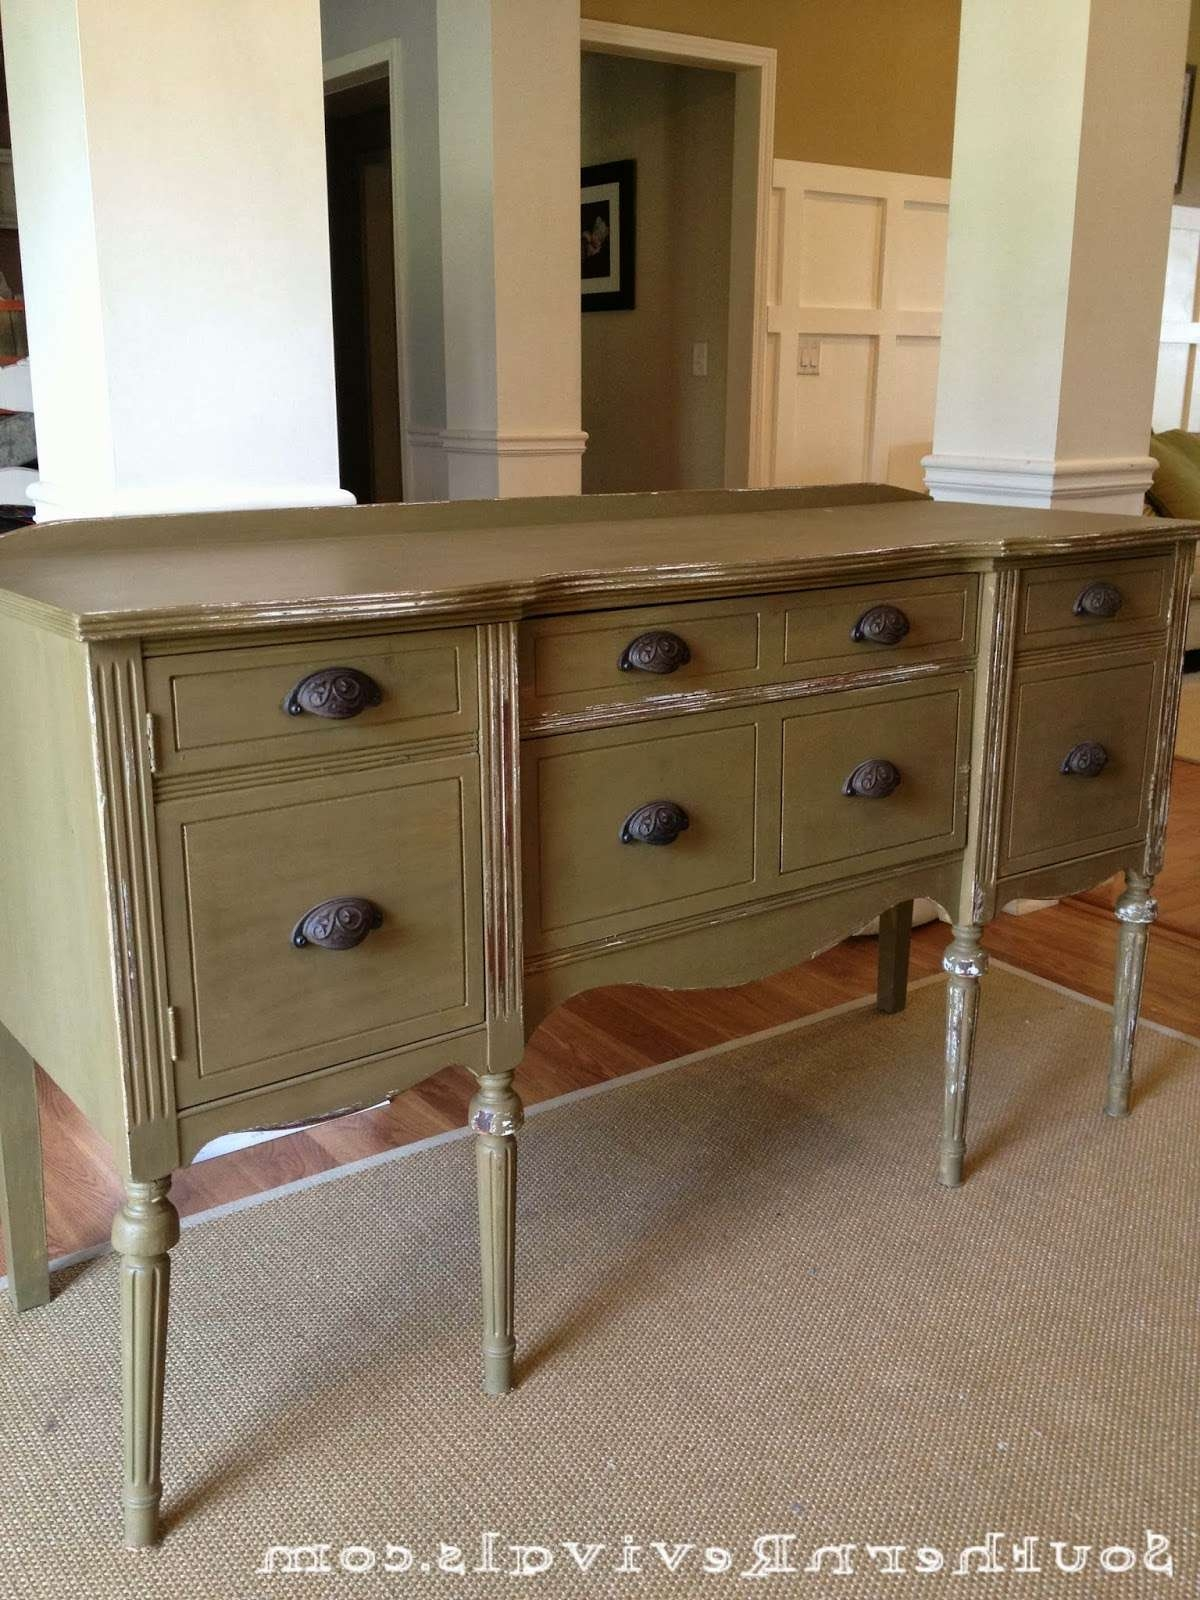 Fresh Vintage Sideboards And Buffets – Bjdgjy With Regard To Antique Sideboards Buffets (View 13 of 20)